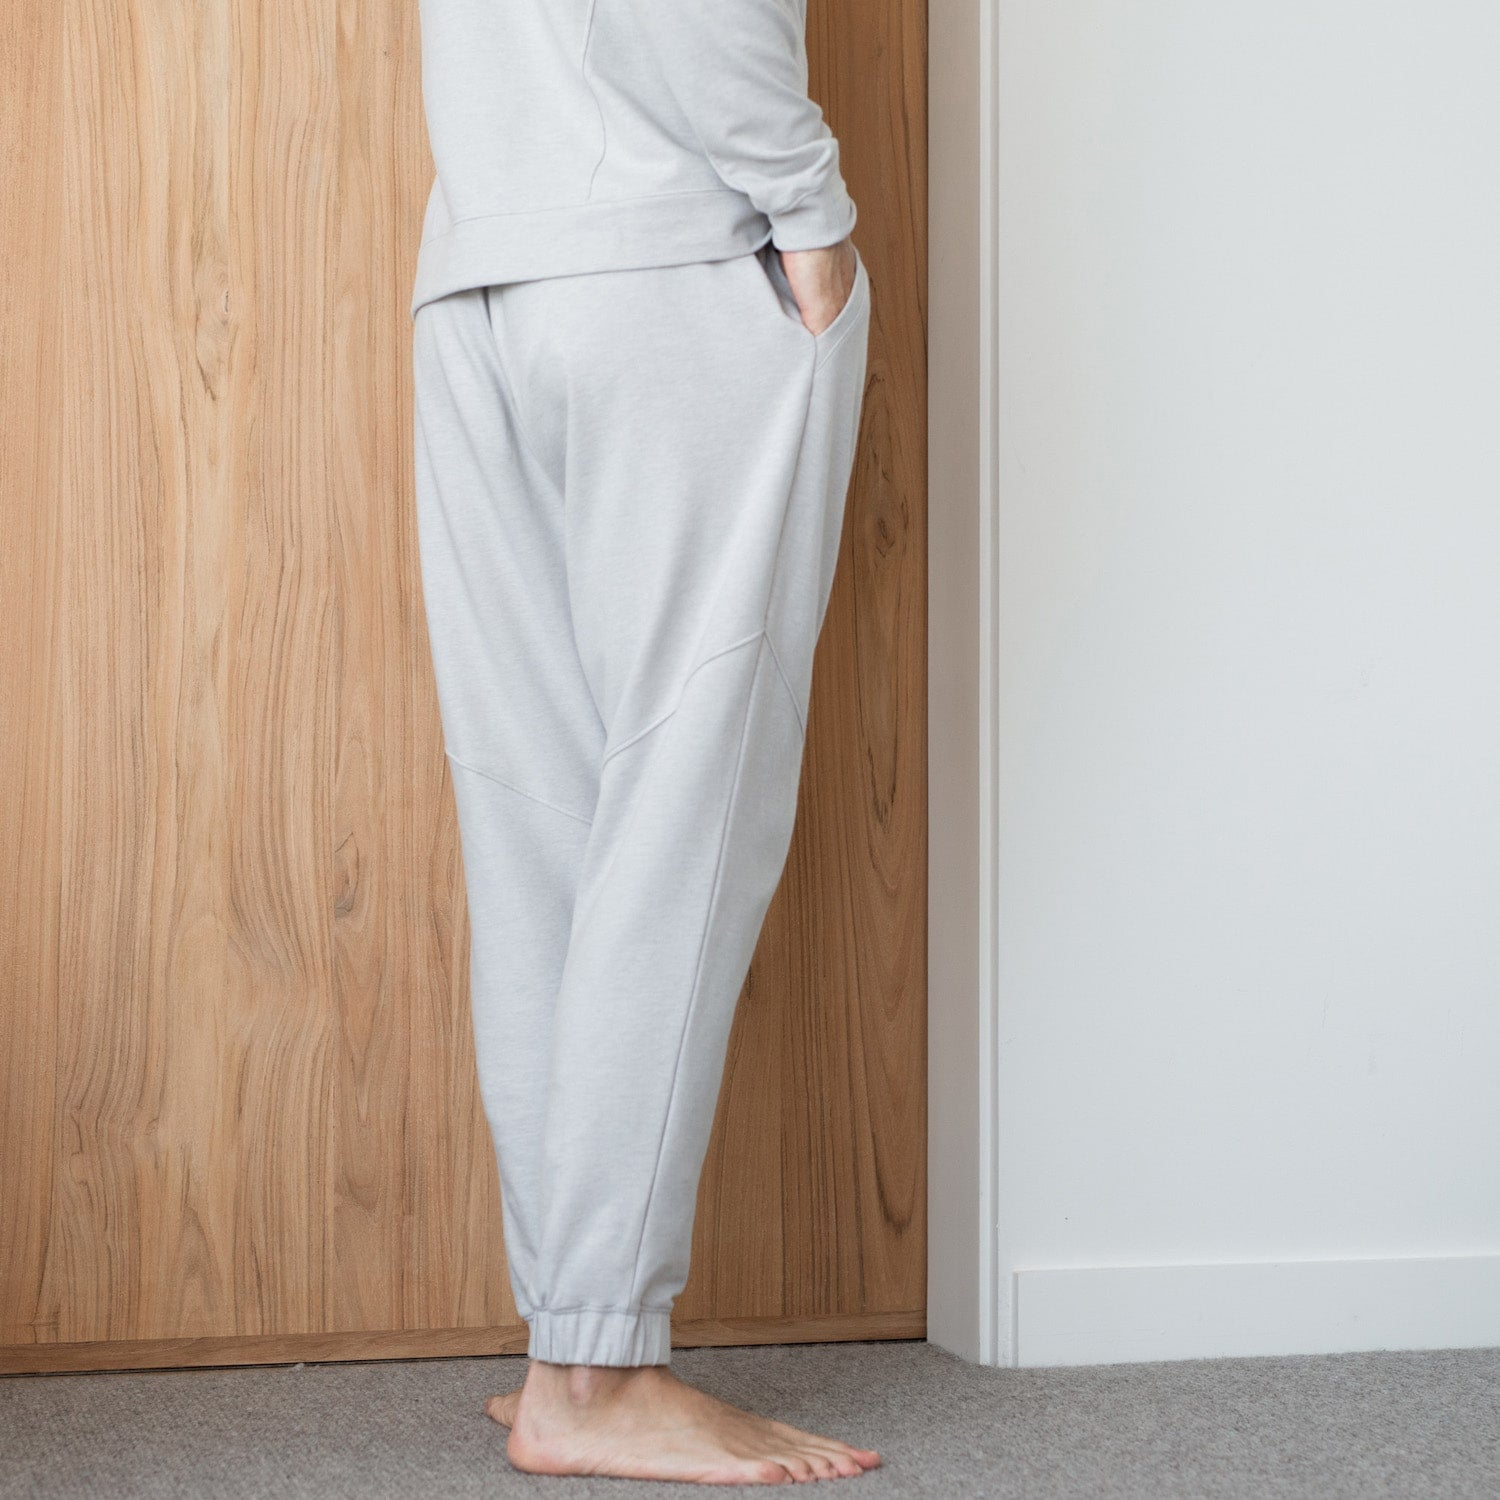 Lahgo Sleepwear Warm Pima Alpaca Fleece Pant - #Cloud/Eclipse